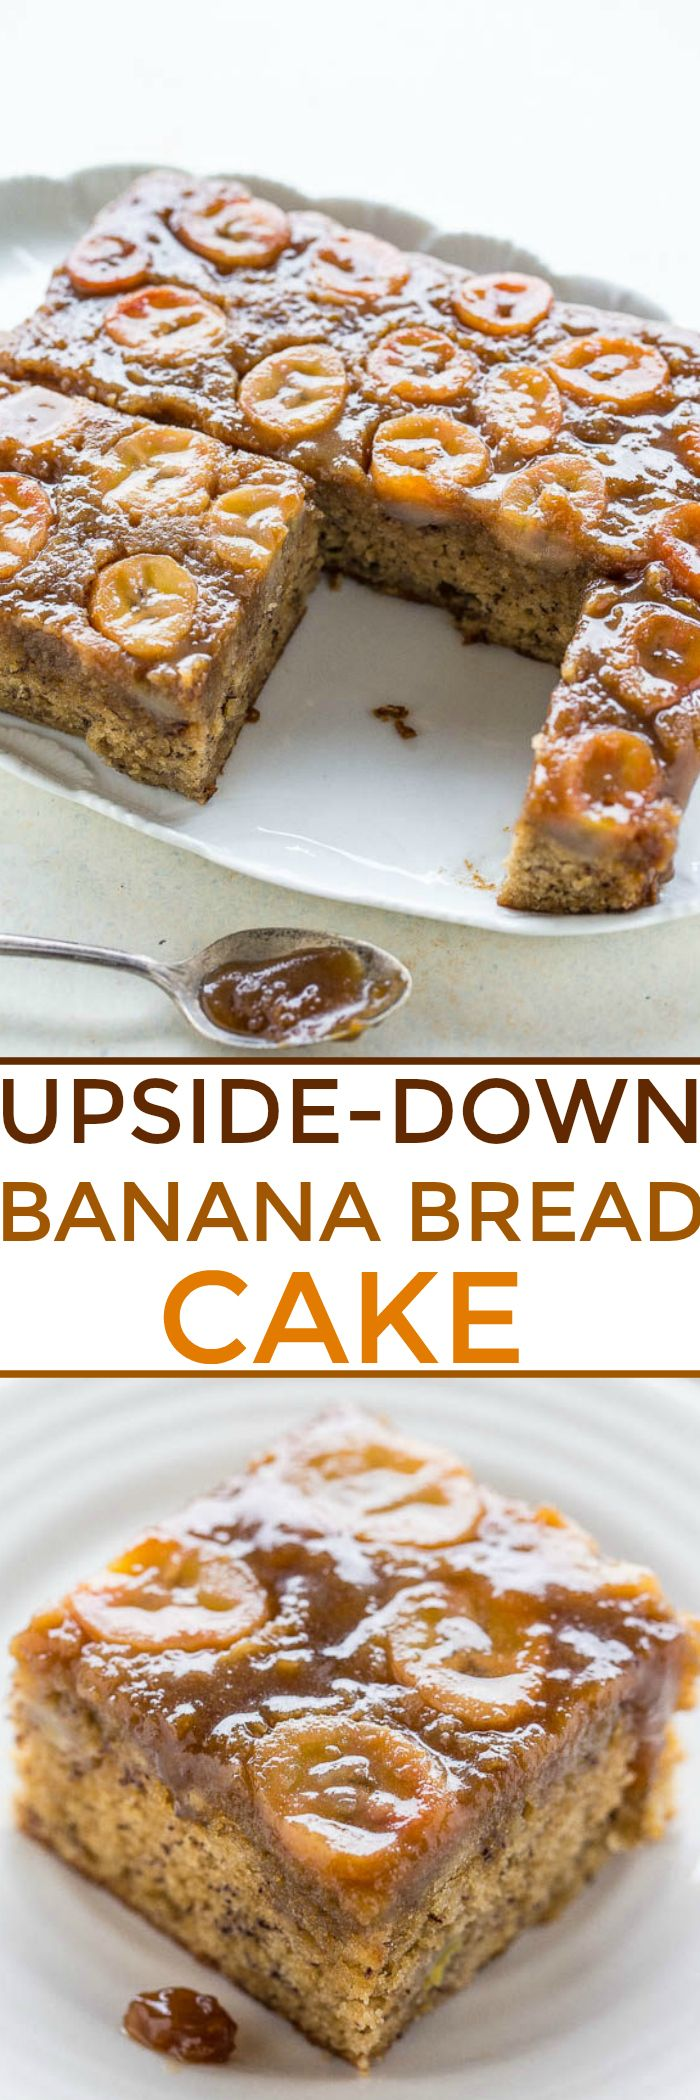 Upside-Down Banana Bread Cake - Don't settle for making another loaf of plain banana bread when you can have caramelized banana slices on top of soft banana cake!! A decadent spin on banana bread! The BEST use for your ripe bananas!!